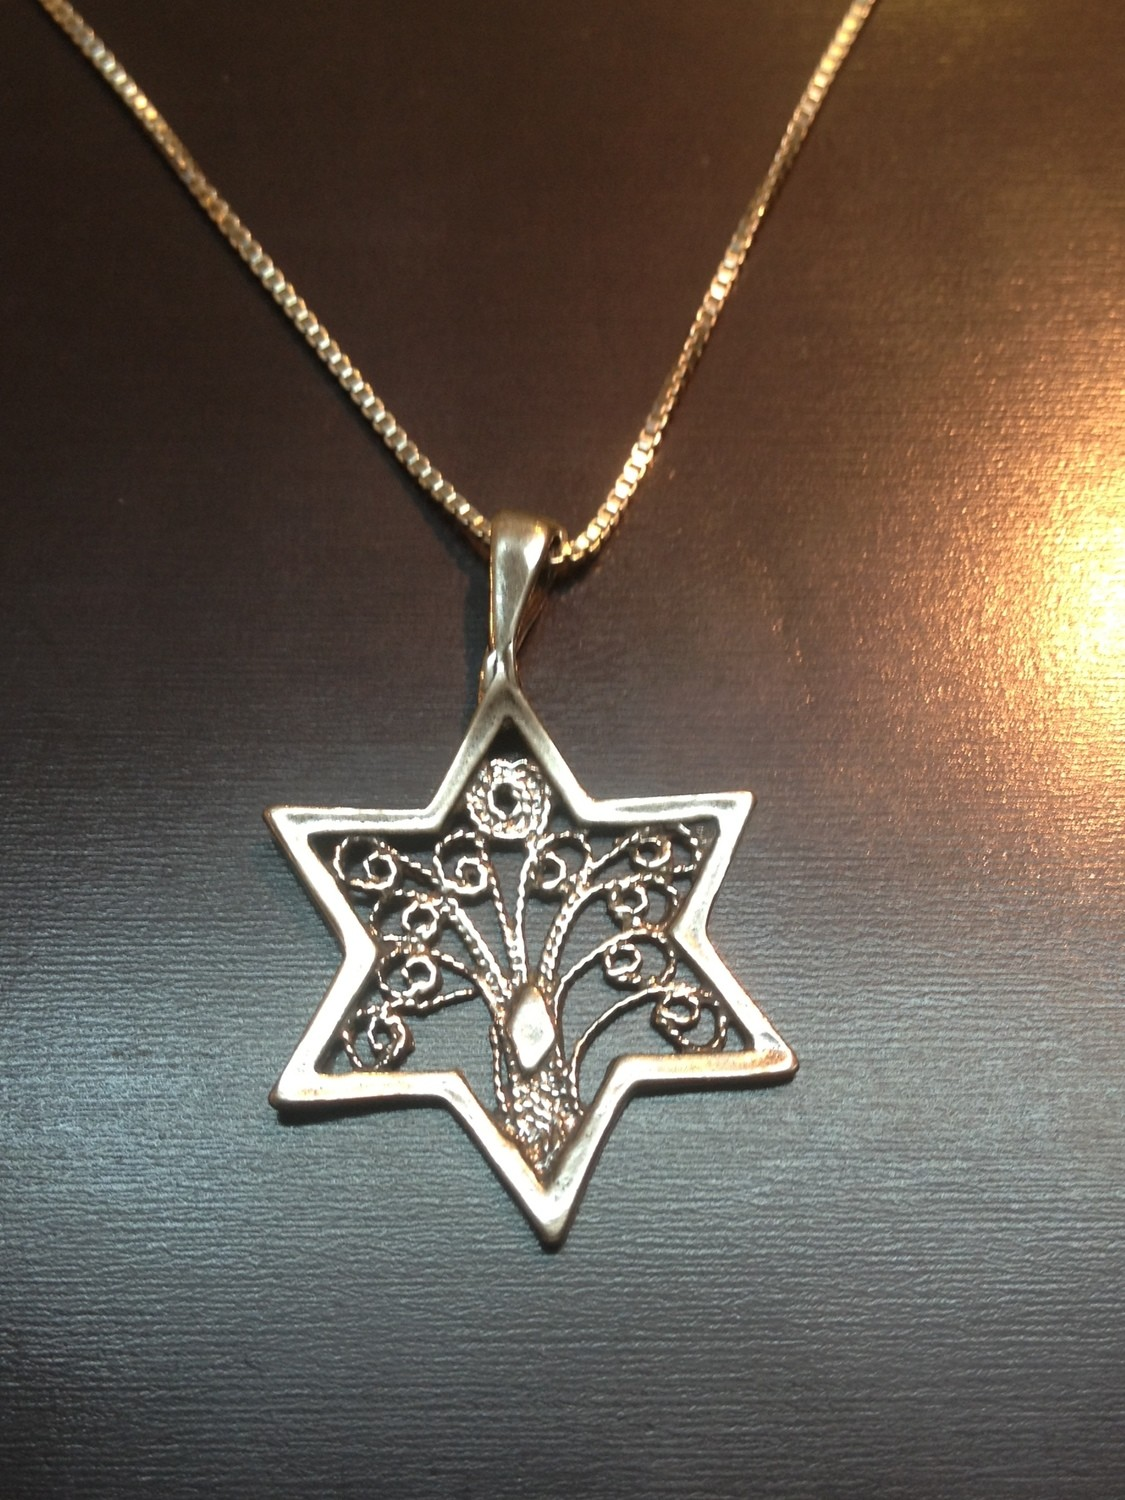 TREE OF LIFE SHIELDED BY THE STAR OF DAVID